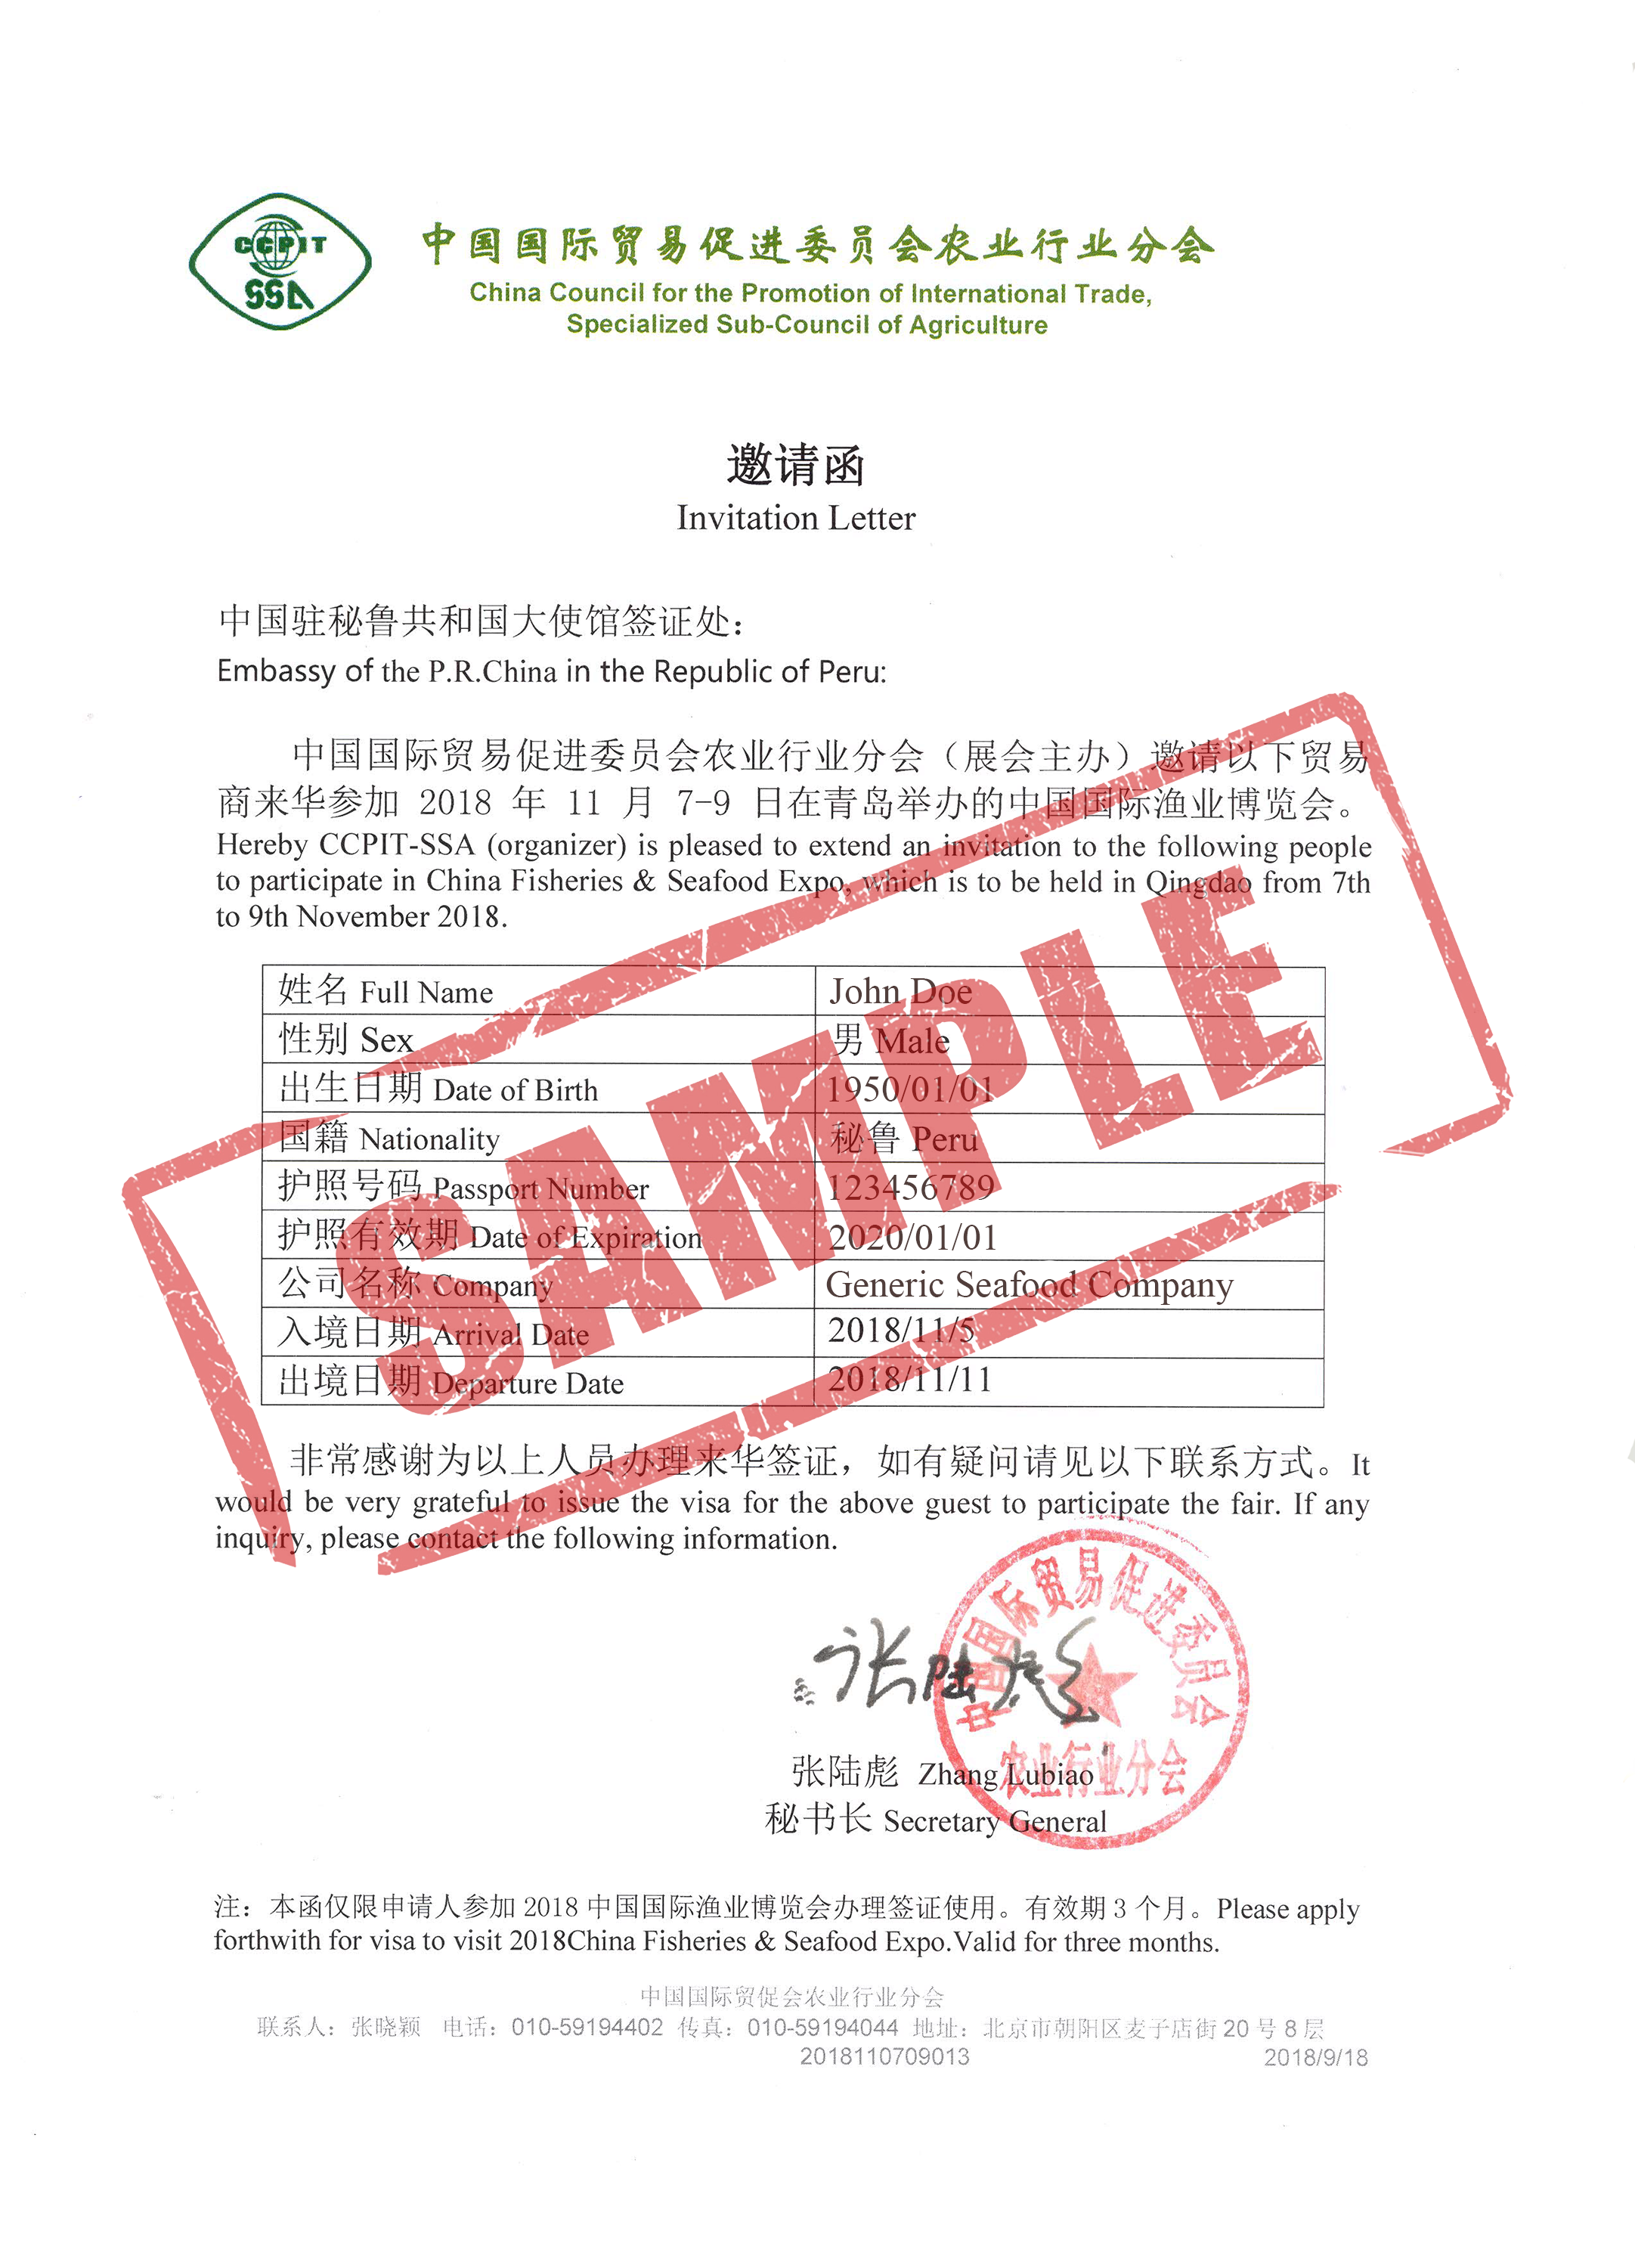 Letters Of Invitation China Seafood Expo